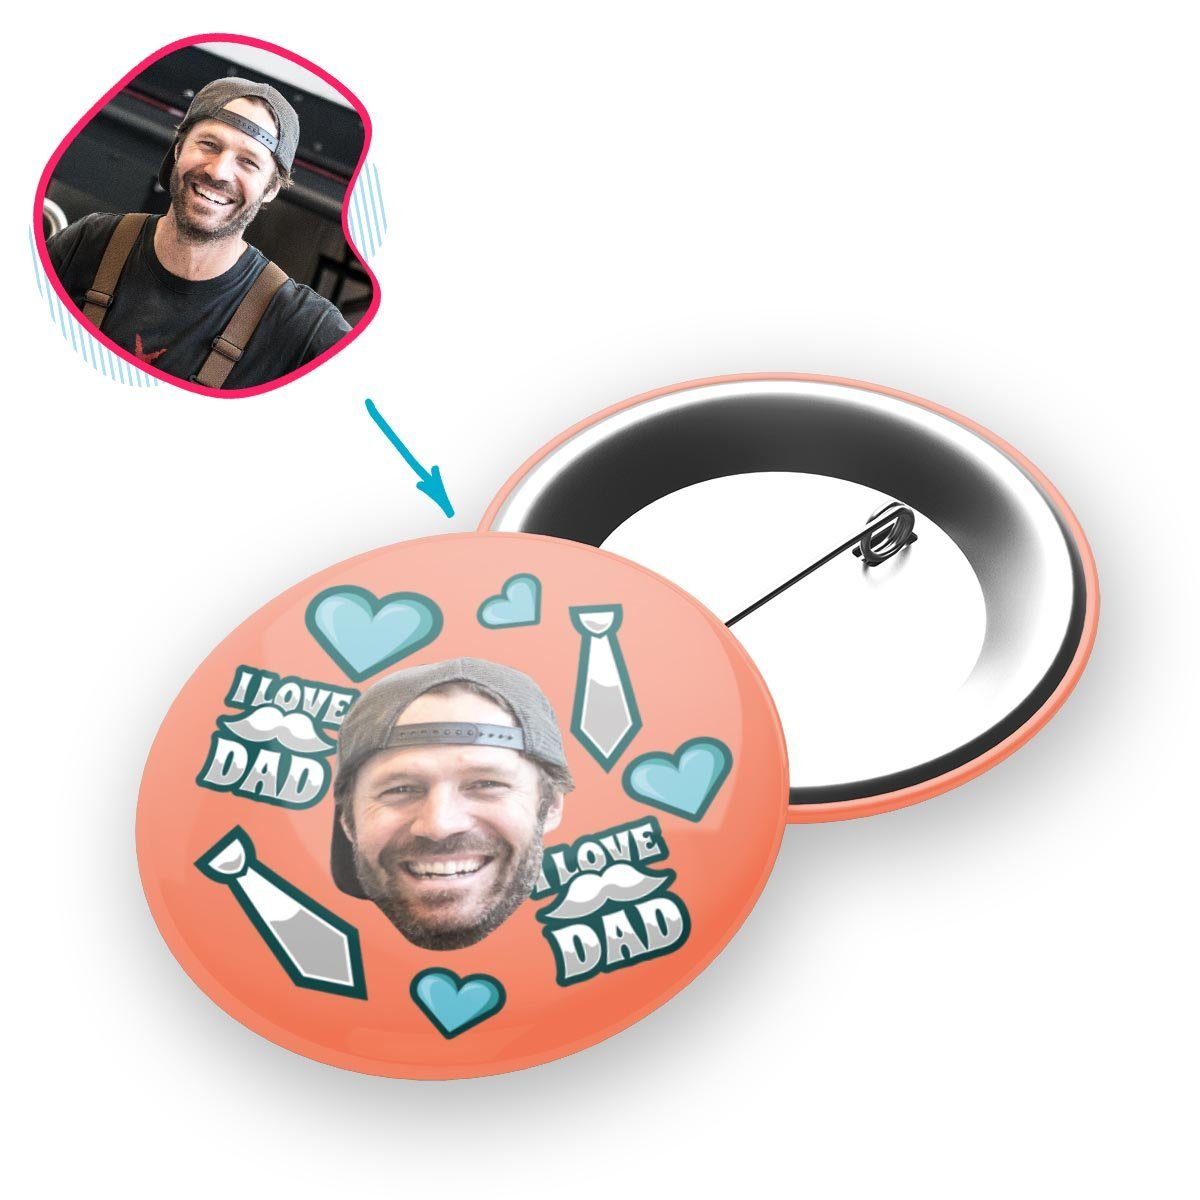 salmon Love Dad pin personalized with photo of face printed on it